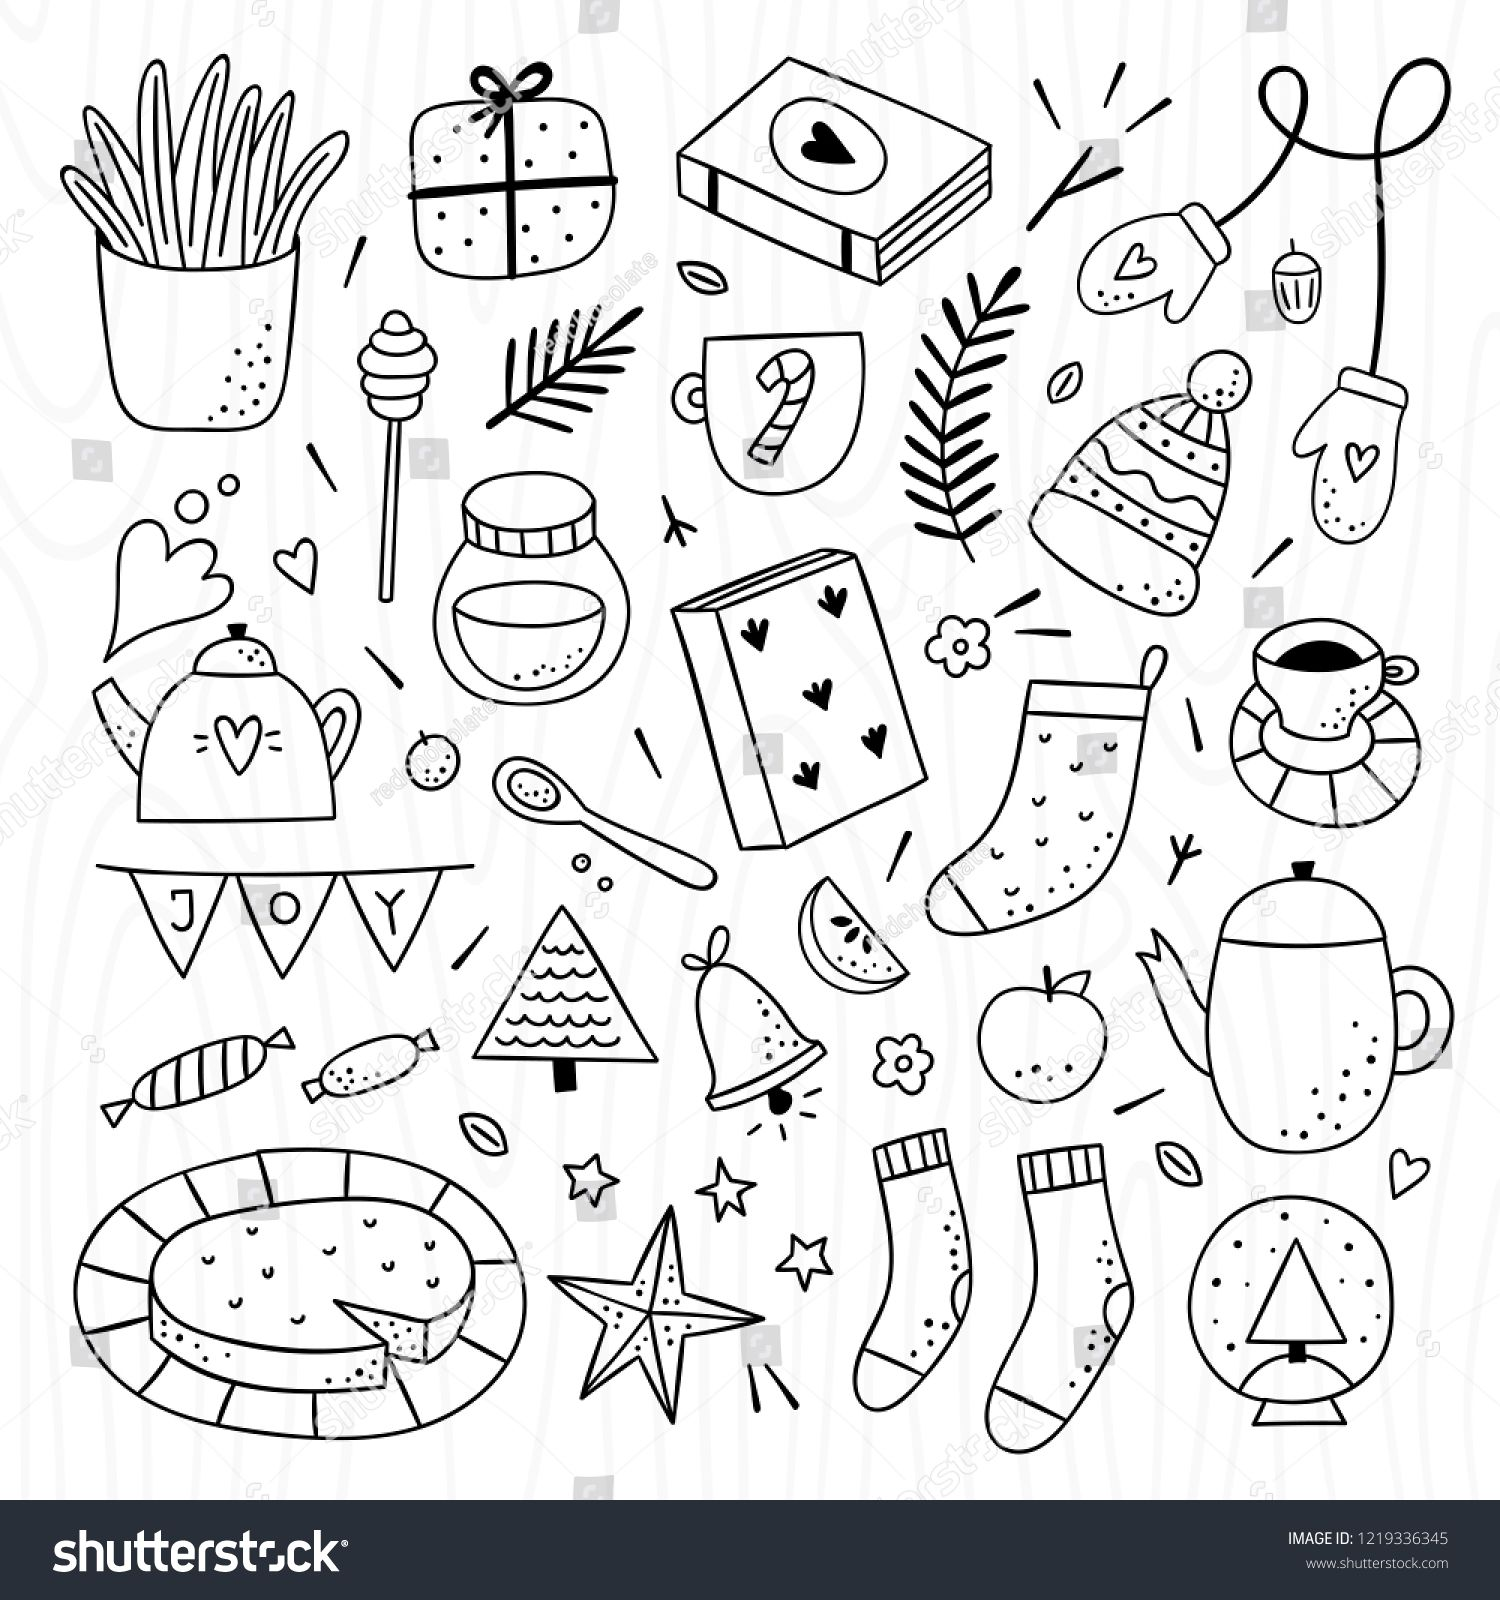 Hygge Elements Outline Collection Cozy Home Lifestyle Objects On White Background Winter And Autumn Cute Doodles Sponso Cute Doodles Planner Doodles Doodles